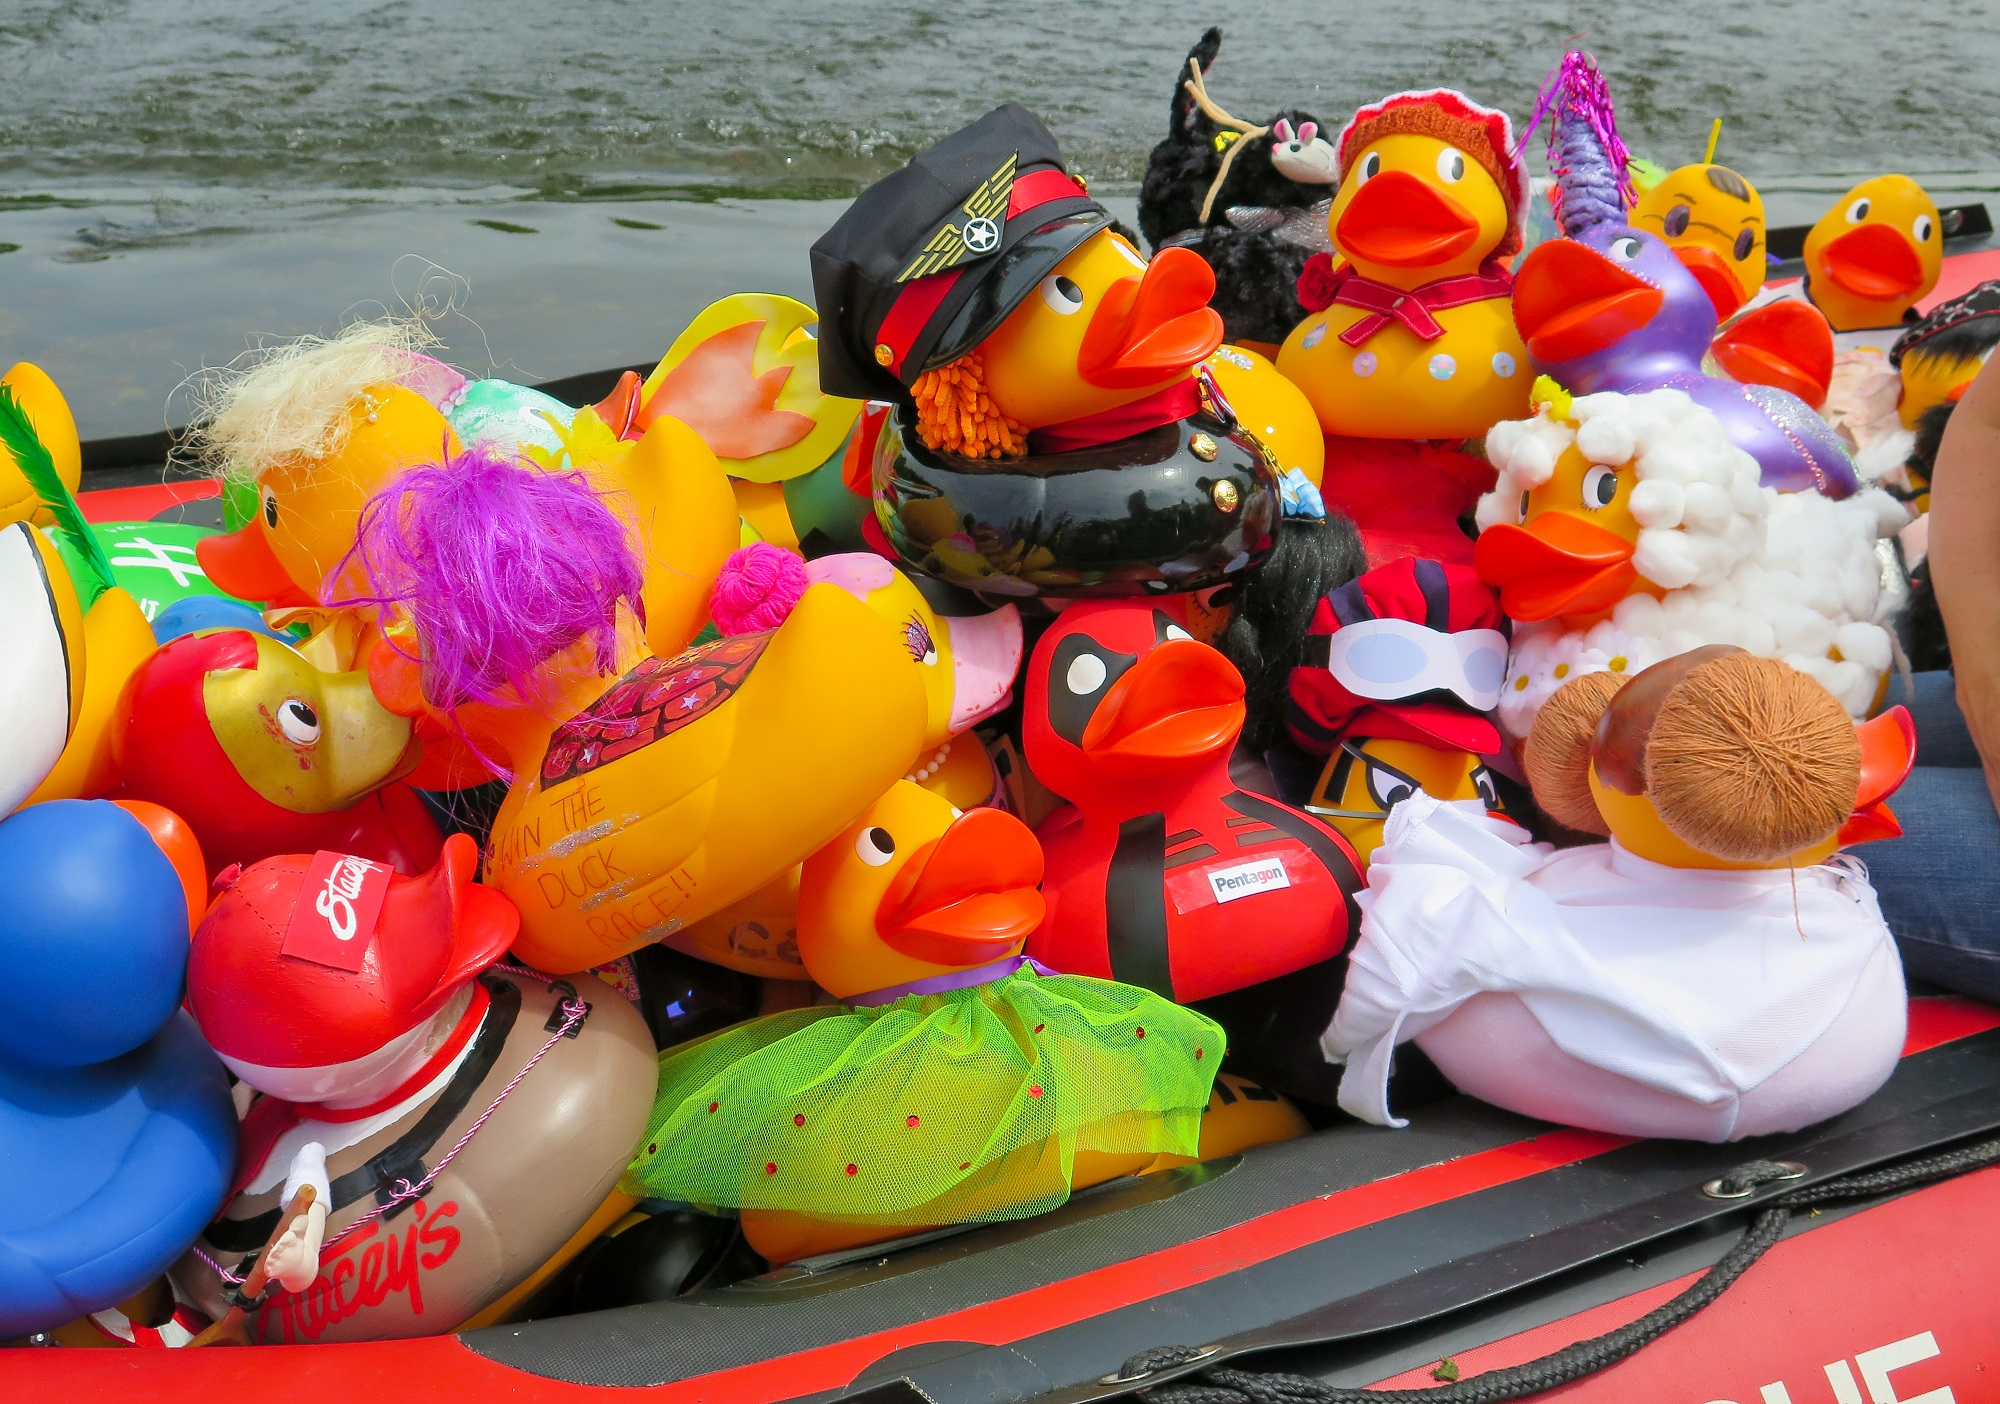 Image showing ducks ready for duck race 2018